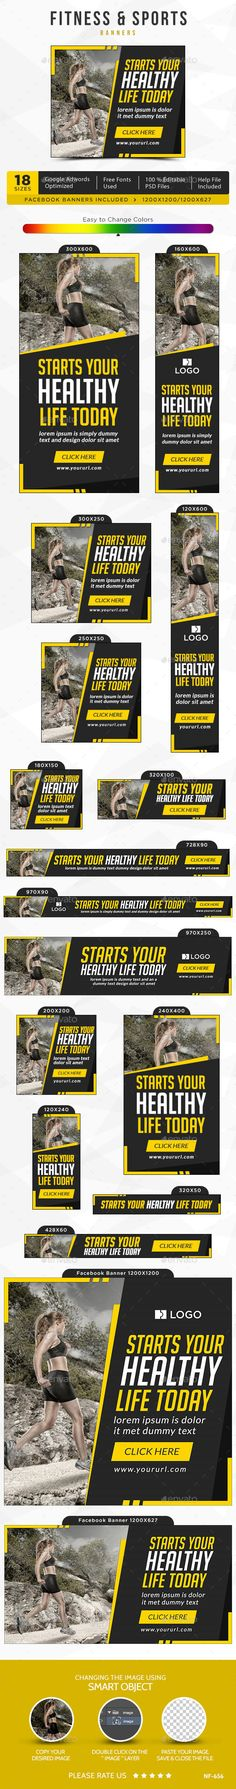 Fitness & Sports Banners Template #design #ads Download…